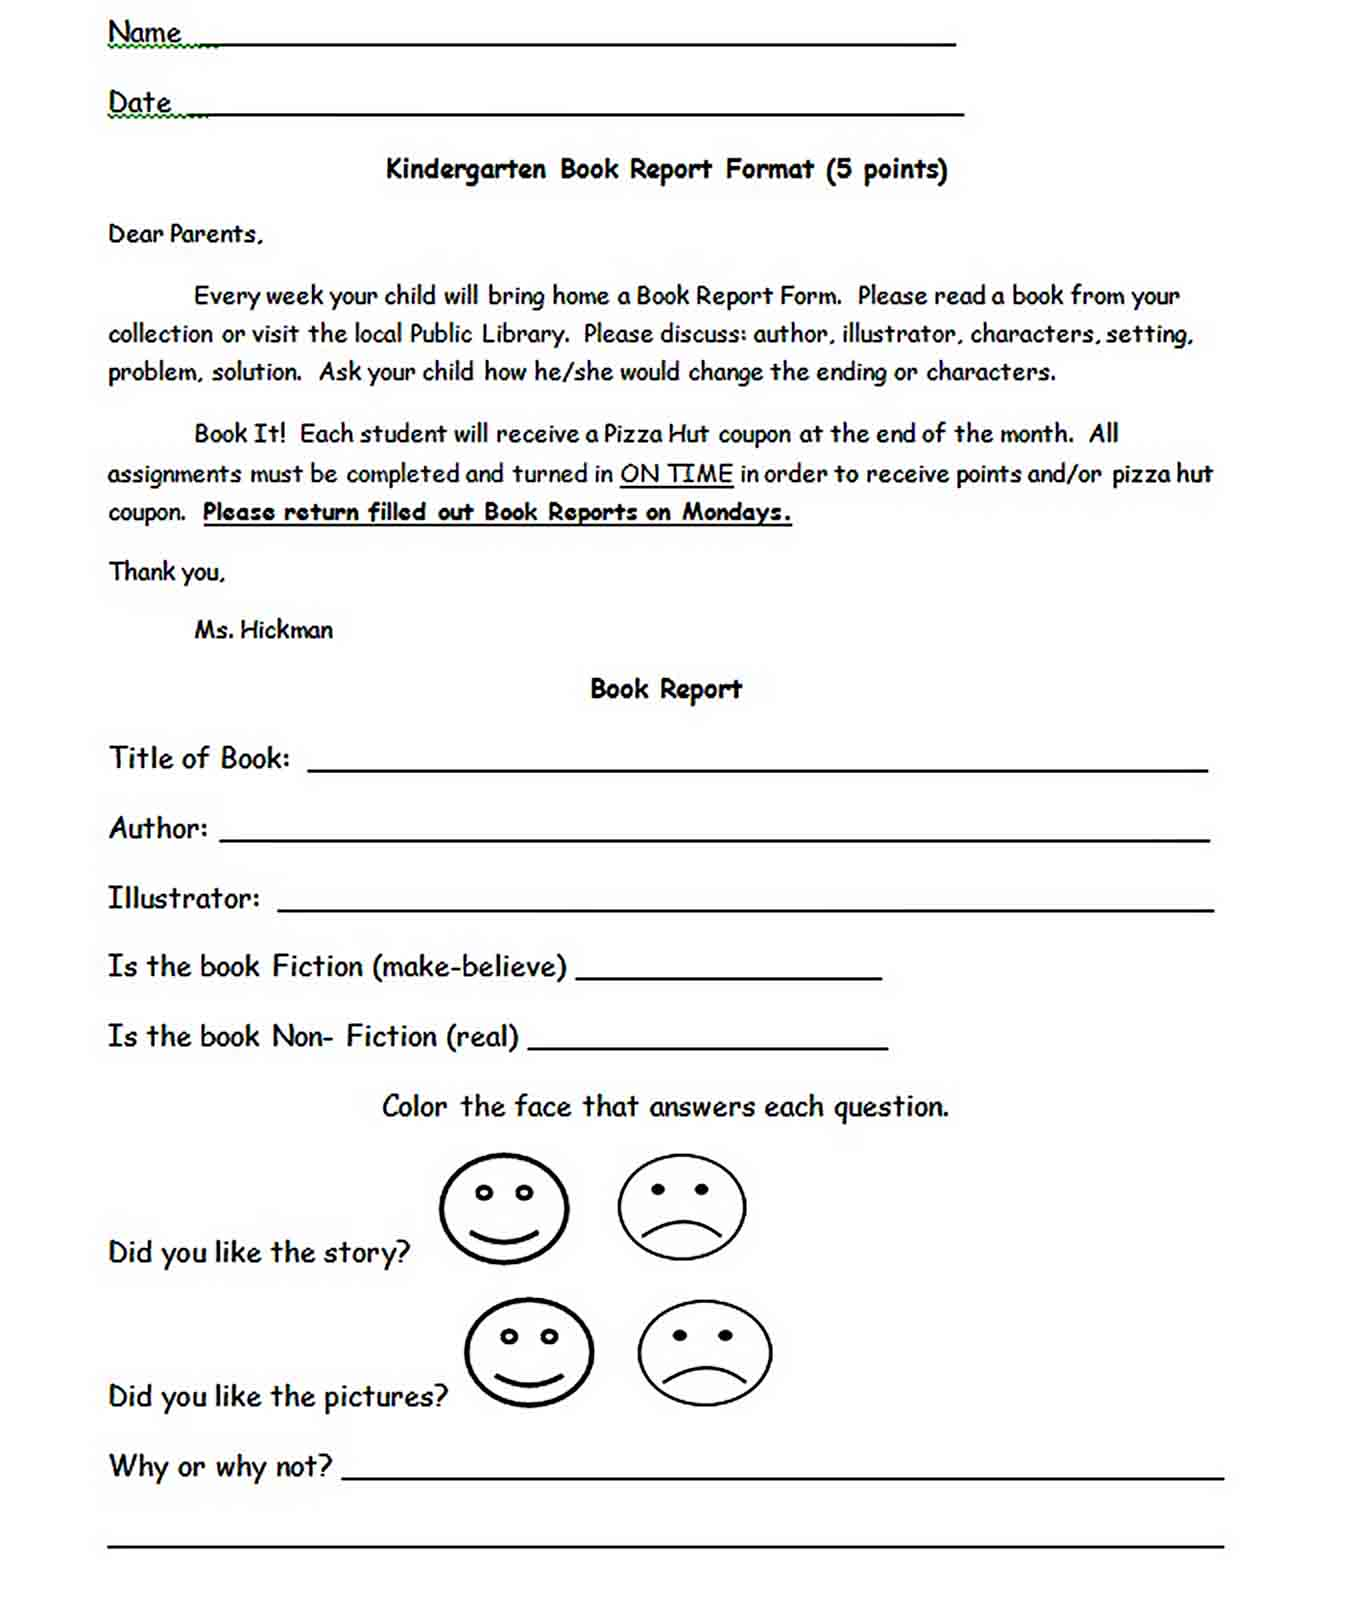 Templates Kindergarten Book Report